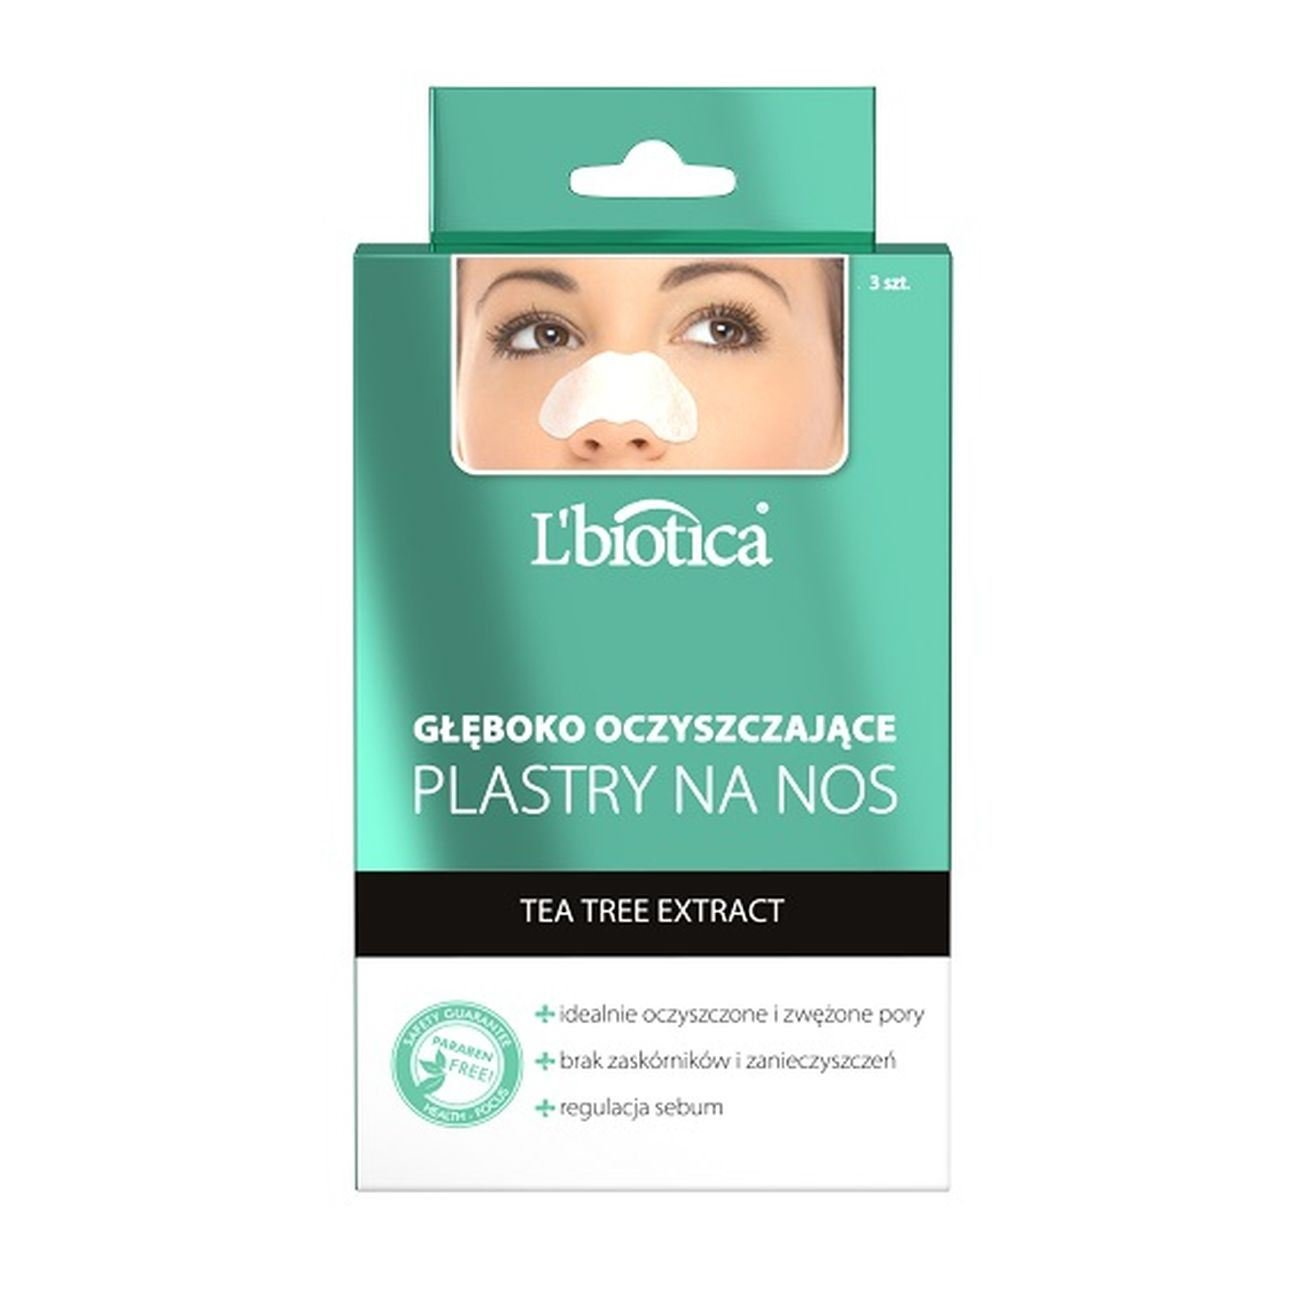 L'Biotica Nasal Stripes Deep Purrifing with Tea Tree Extract Nose Patches 3pcs L'biotica